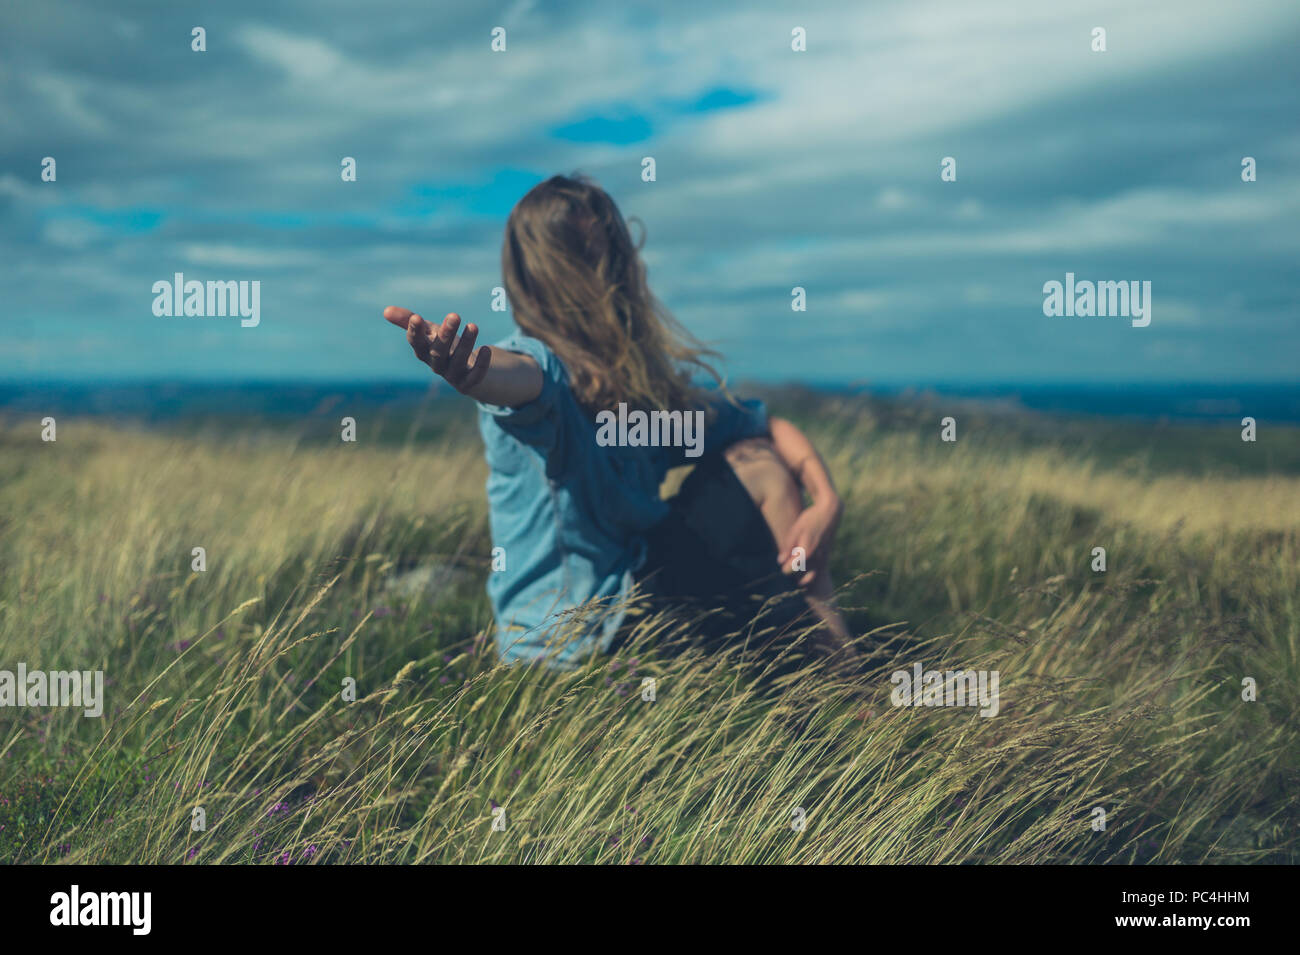 A young woman sitting in a field is offering a hand - Stock Image